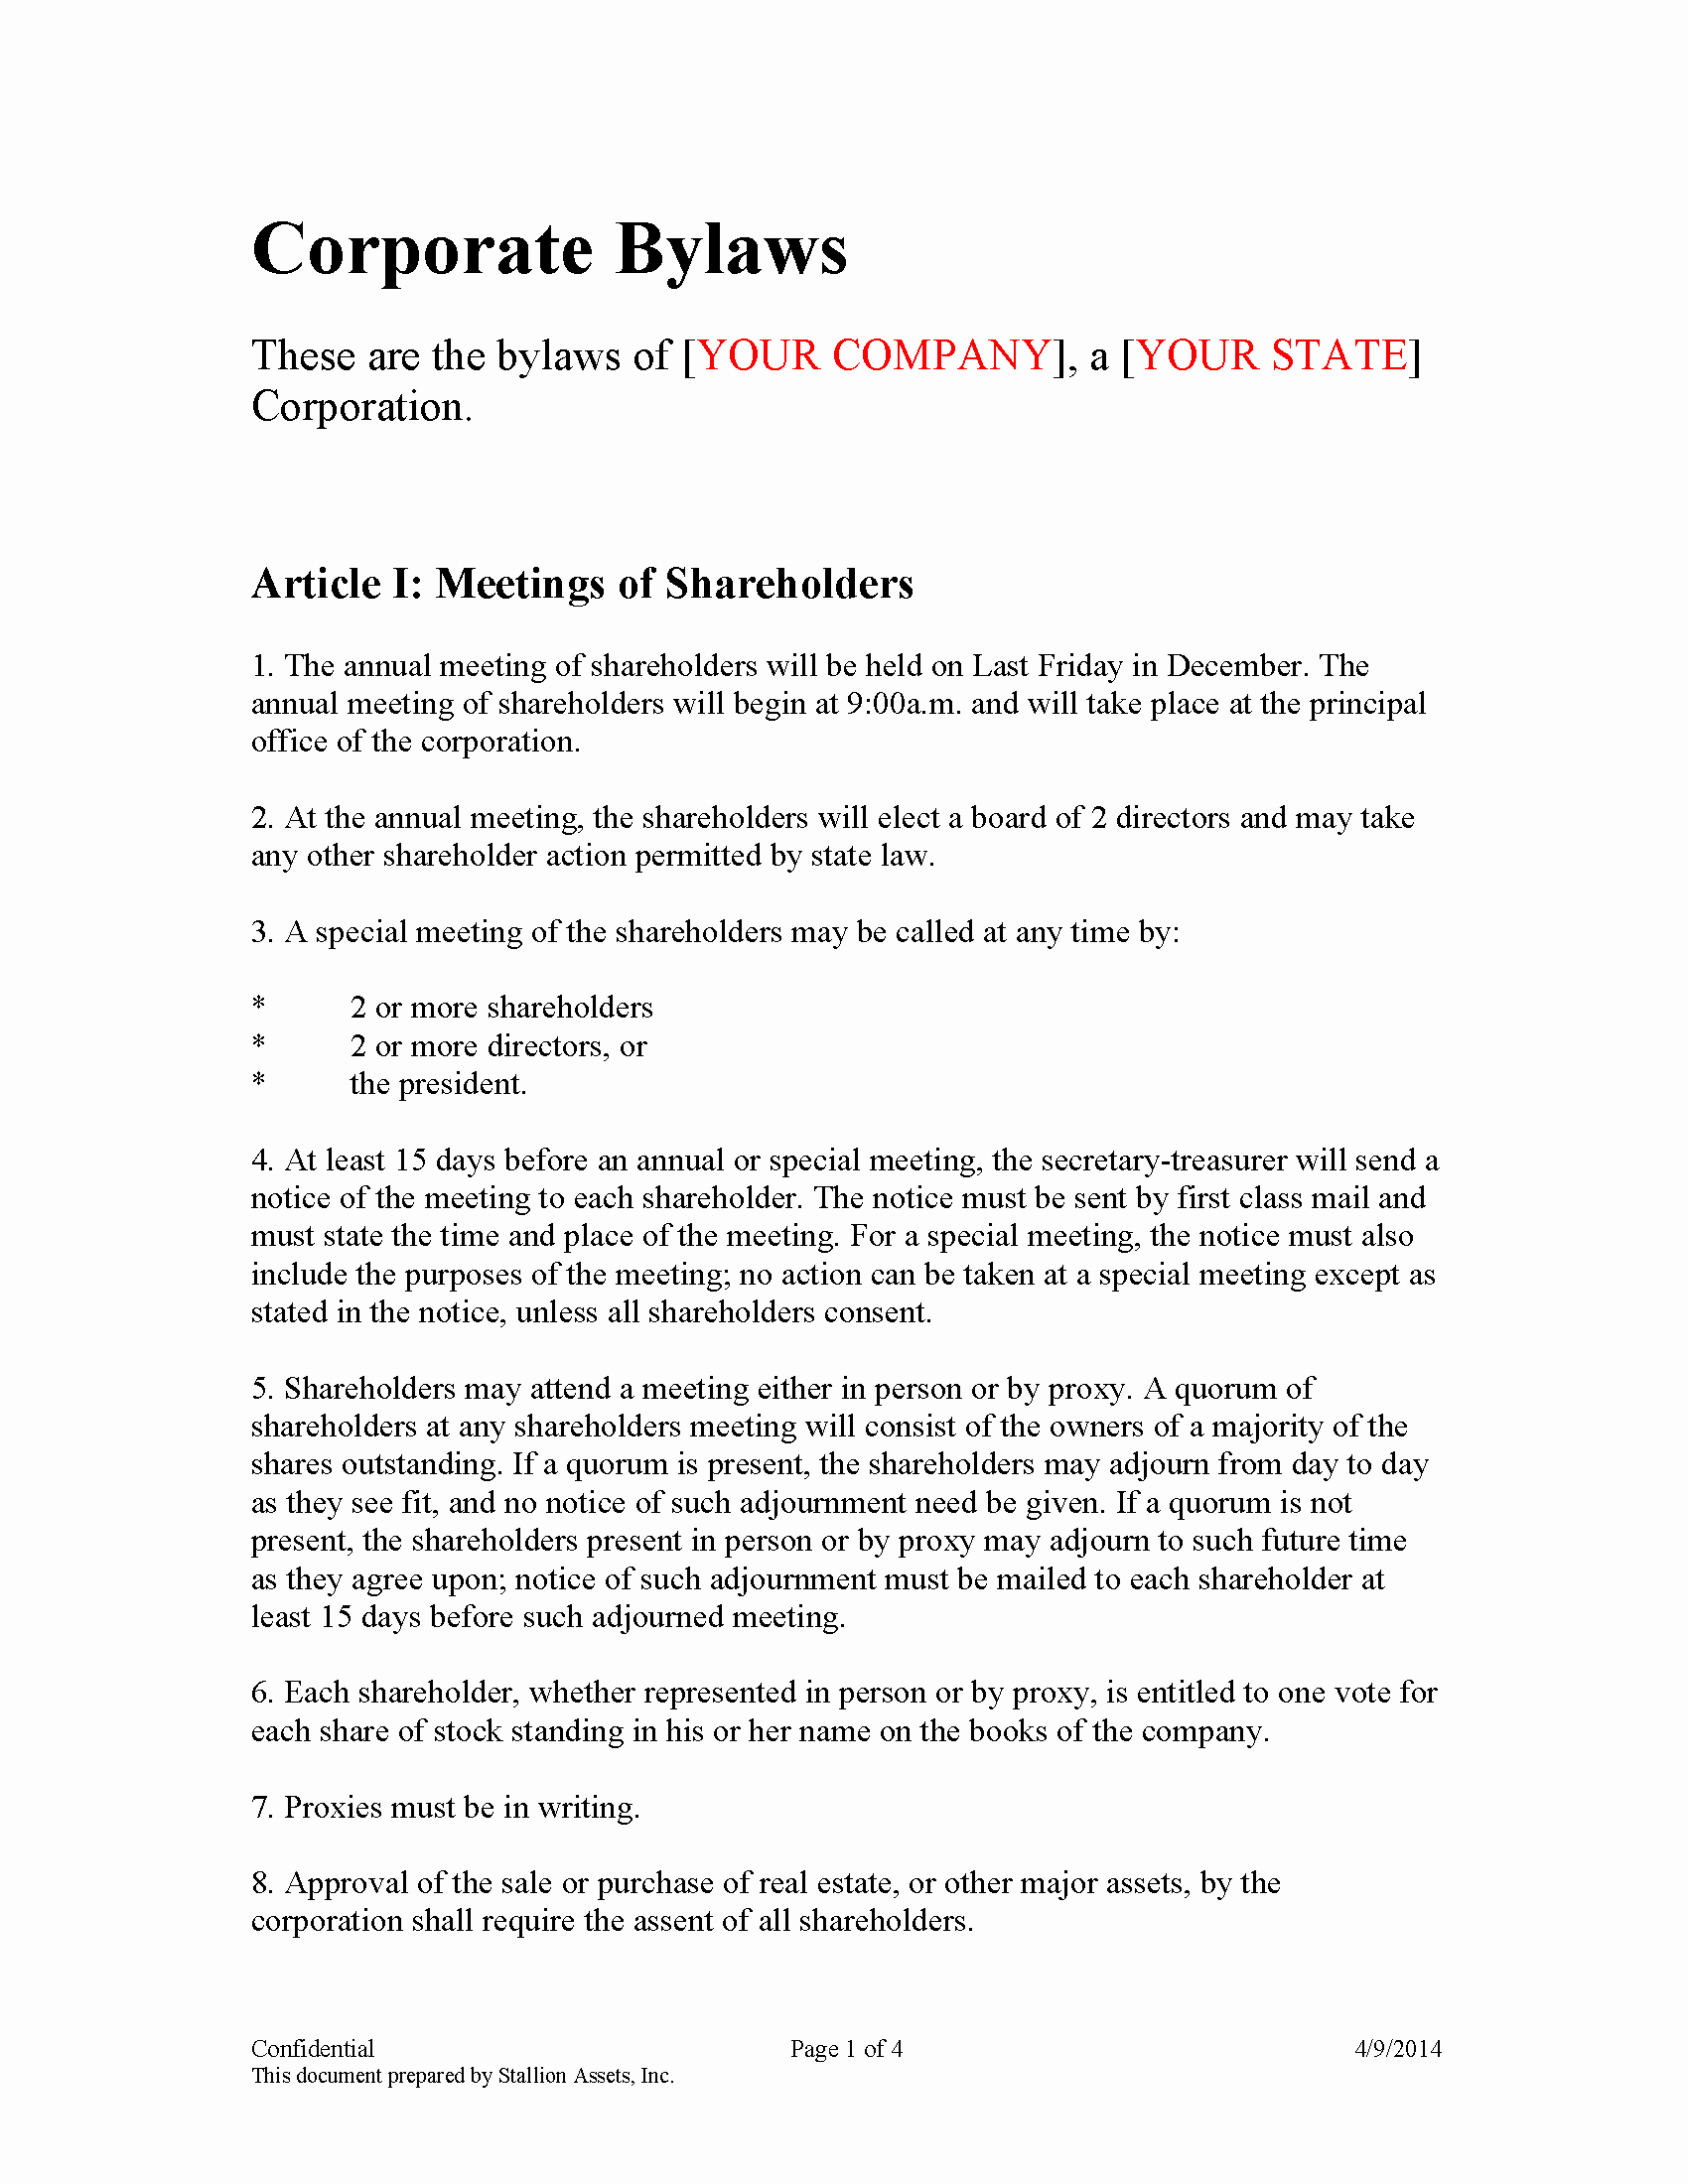 Corporate bylaws Template Word Luxury bylaw Template Mughals